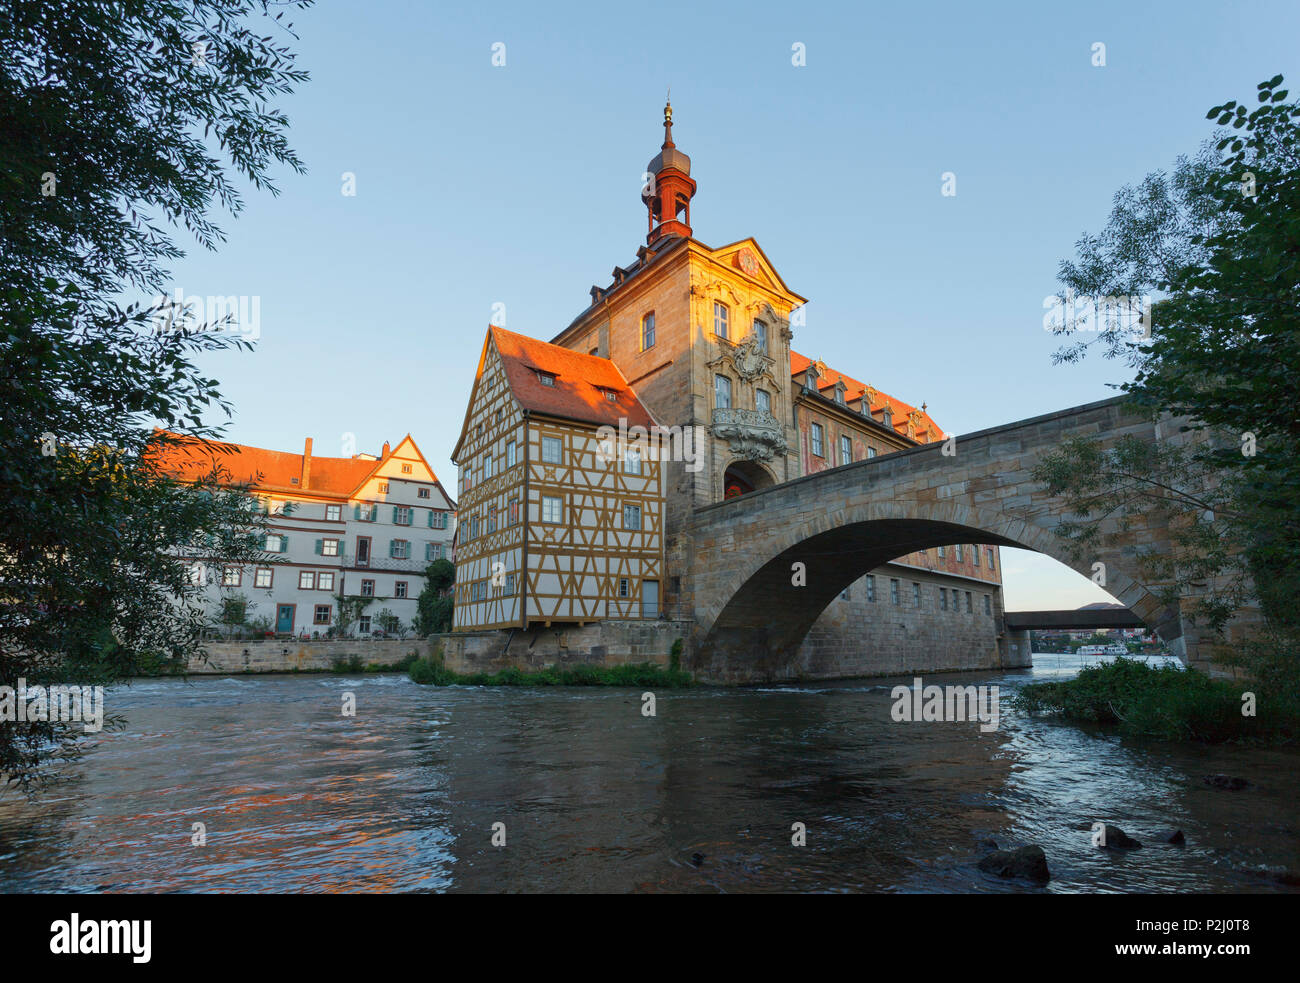 City Hall in Bamberg, 15th century, historic city center, UNESCO world heritage site, Regnitz river, Bamberg, Upper Franconia, B - Stock Image